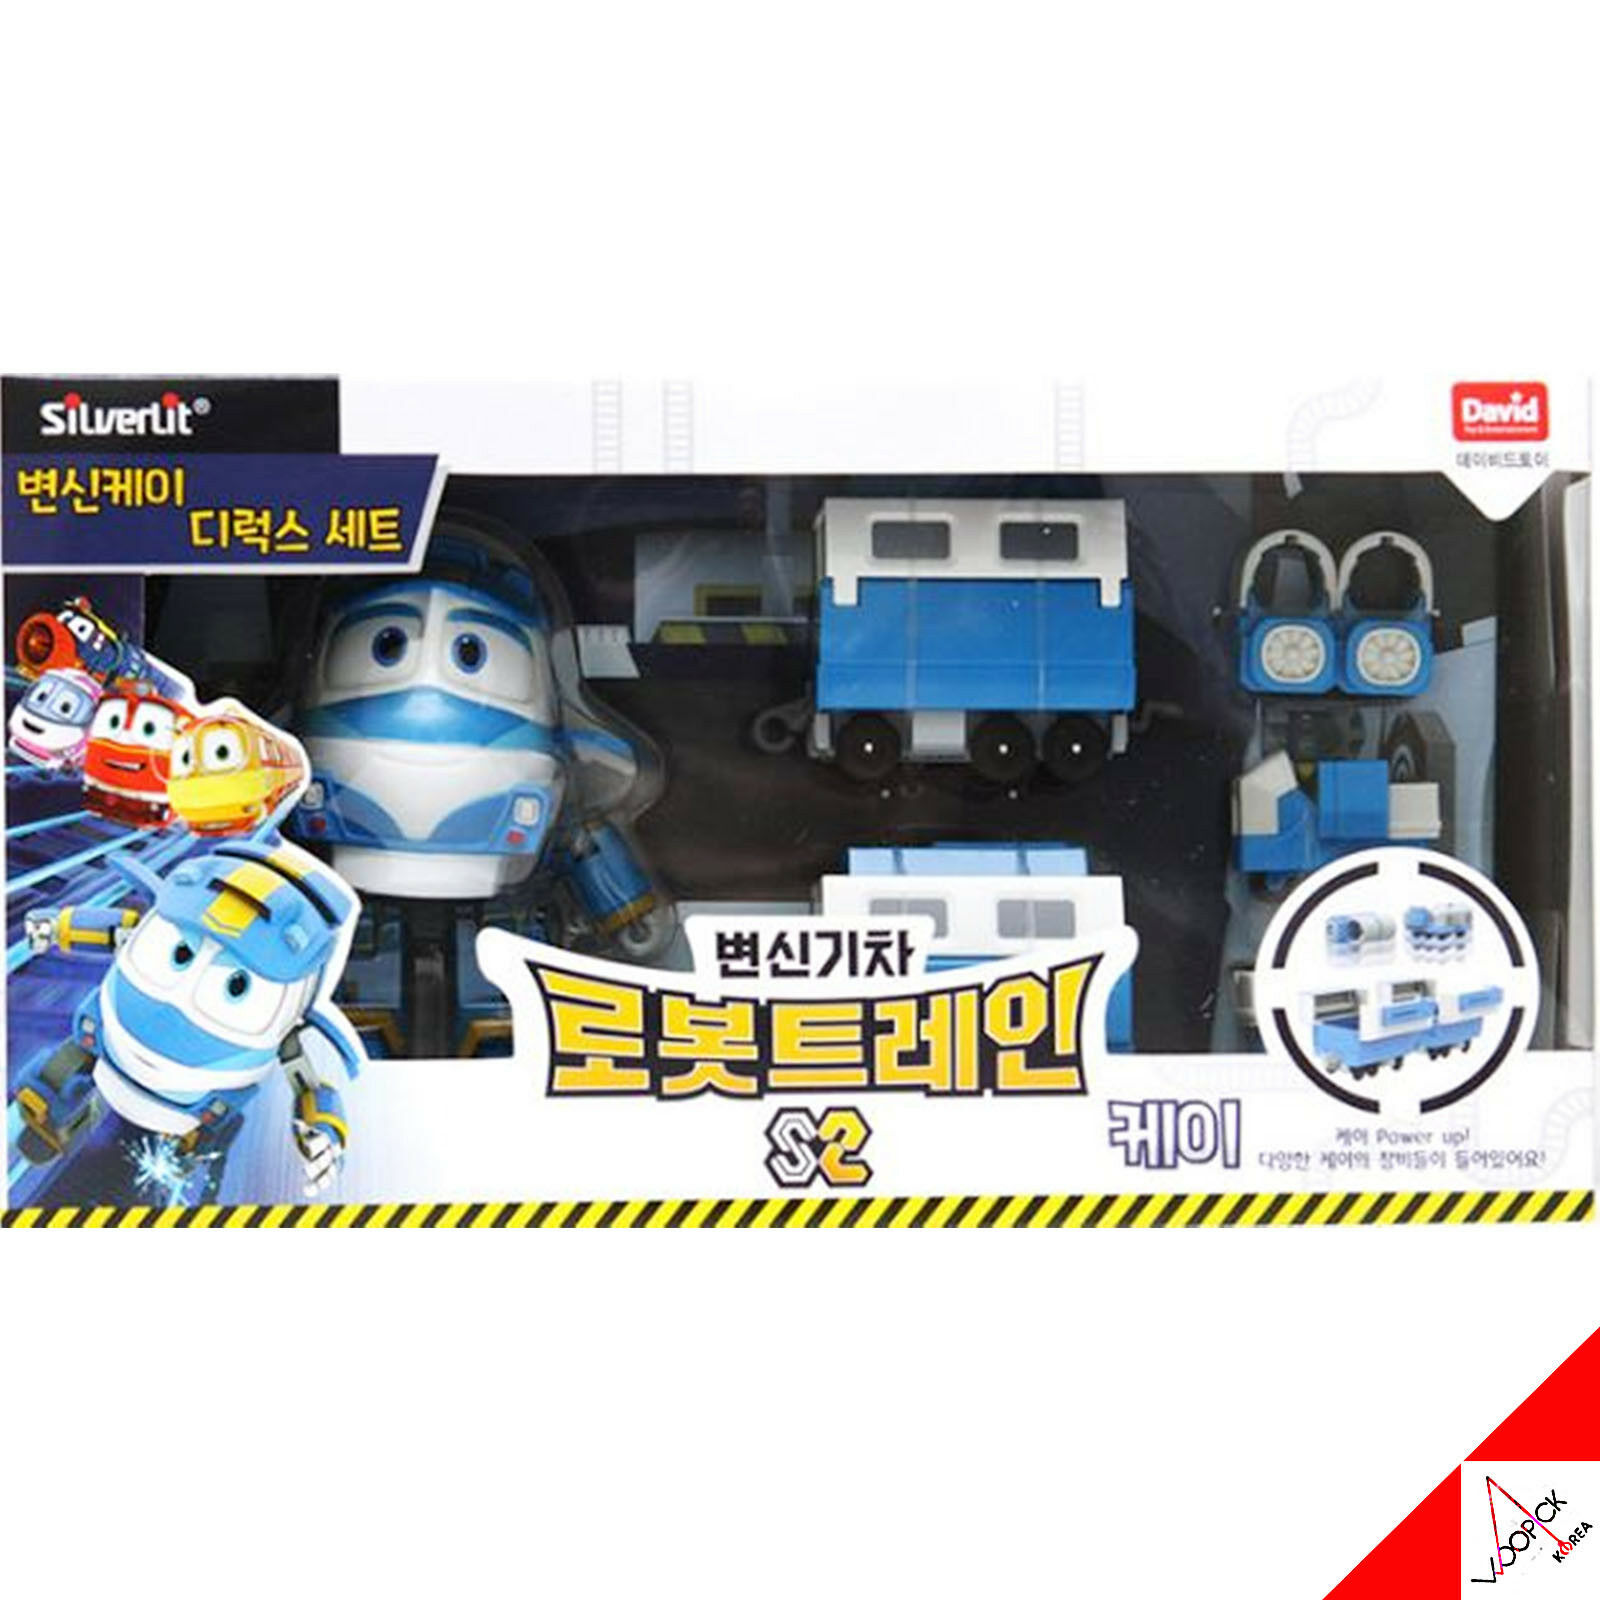 Robot Train S2 TRANSFORMER KAY DELUXE PLAY SET Kids Robots Toy - Korea Animation